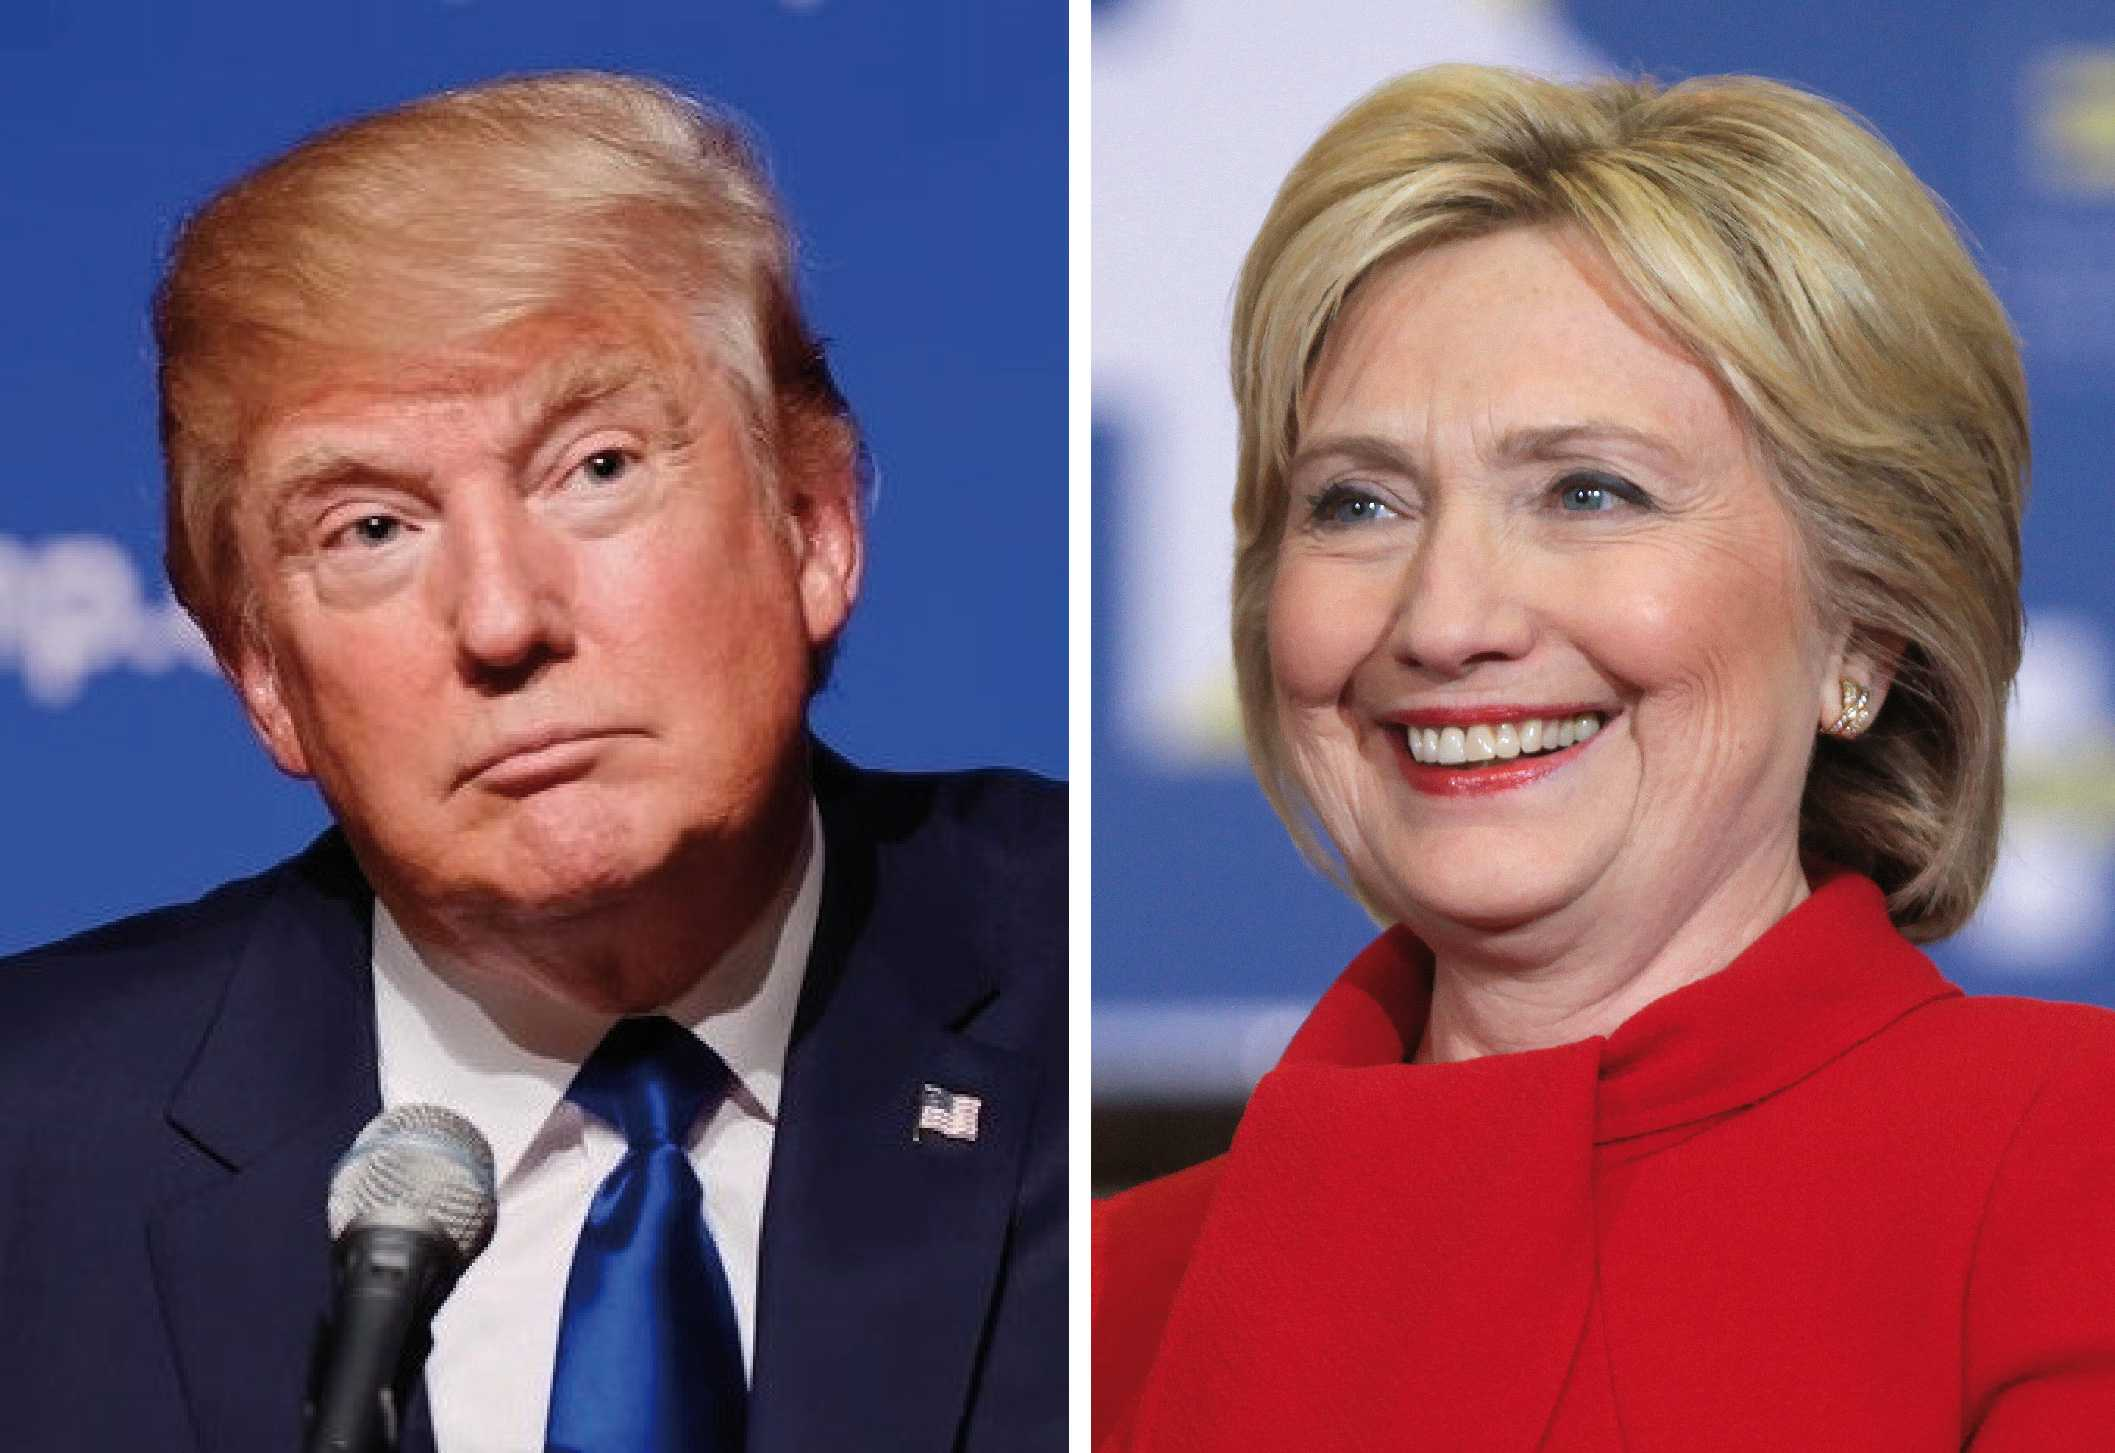 The two leading presidential candidates, Donald Trump (R) and Hillary Clinton (D).